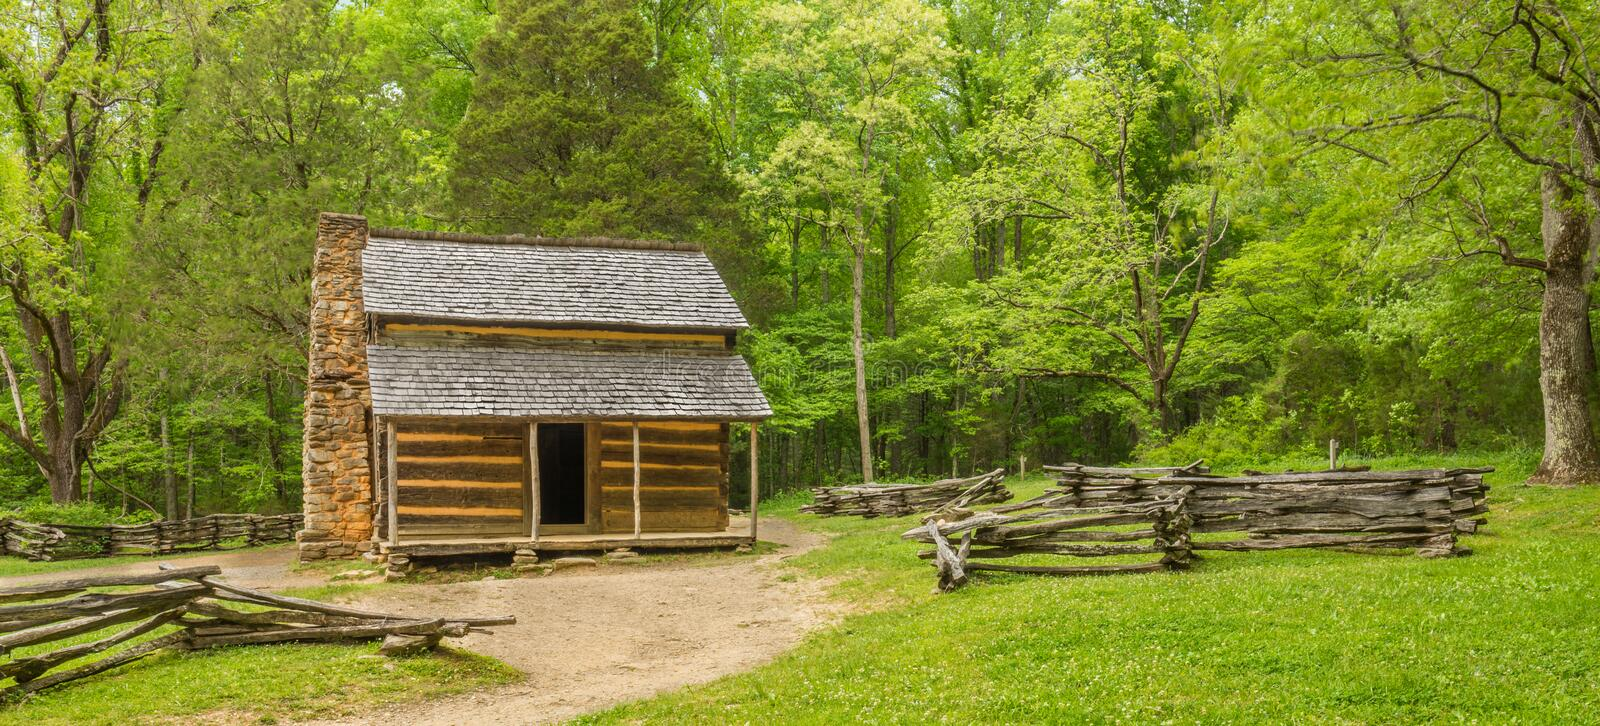 John Oliver's Cabin Great Smoky Mountains National Park stock image